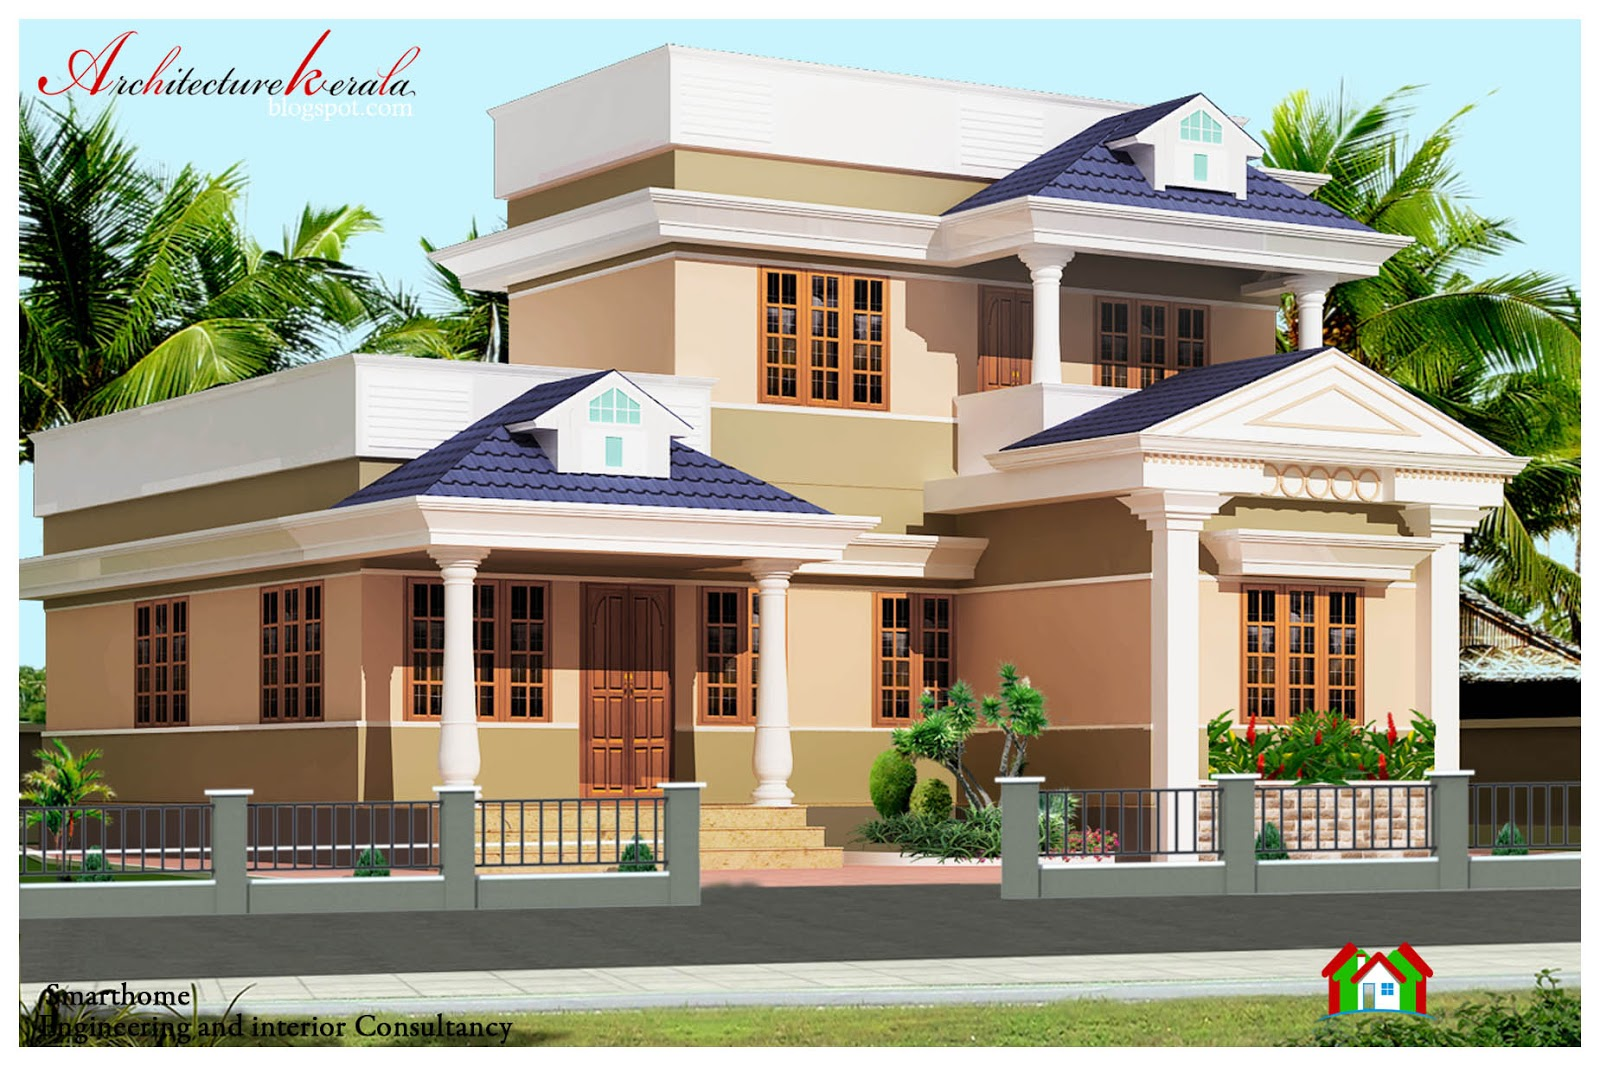 Architecture kerala 1000 sq ft kerala style house plan for Kerala style home designs and elevations